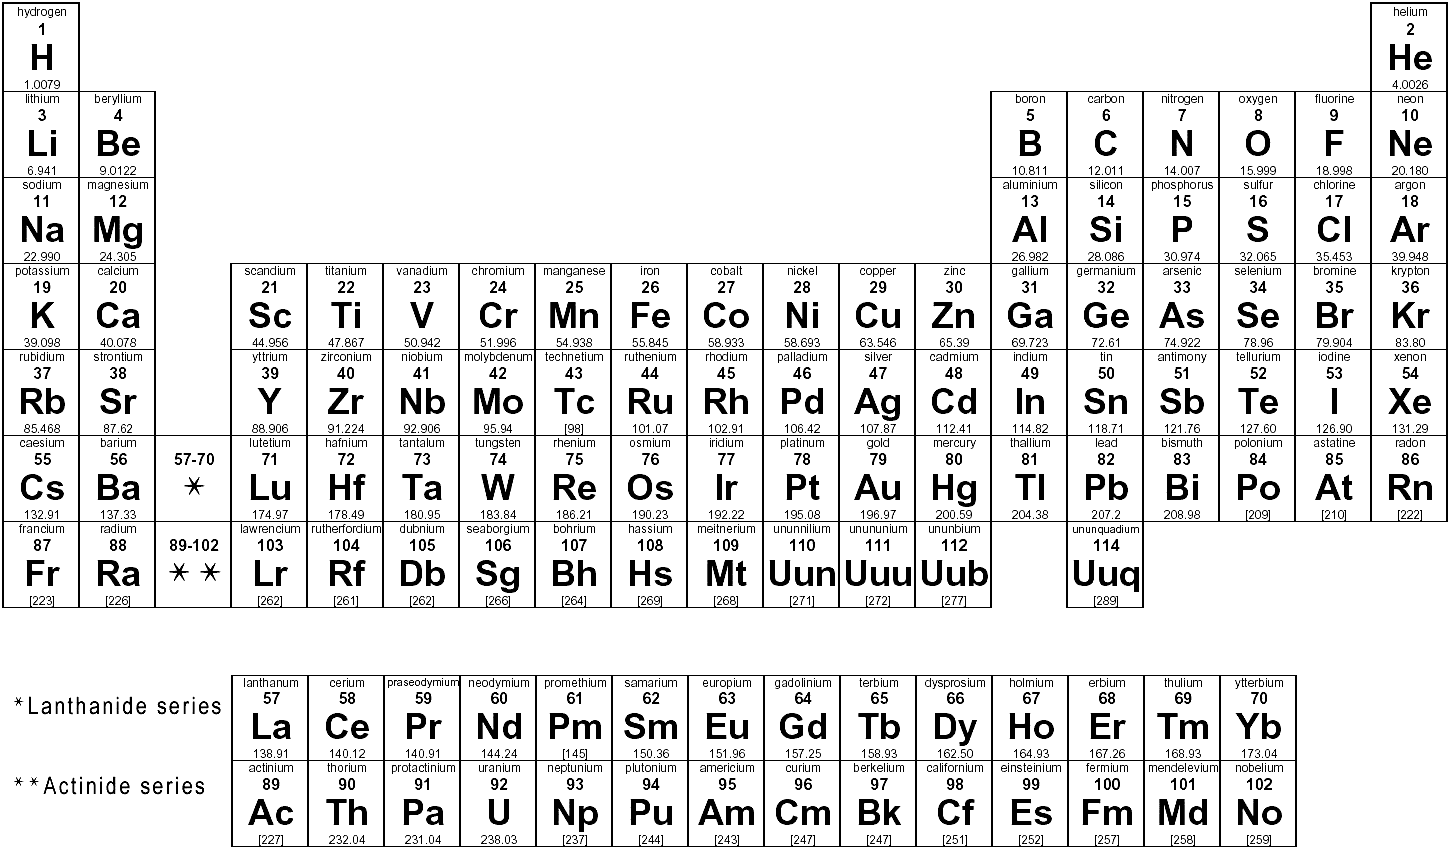 for 12th element on the periodic table